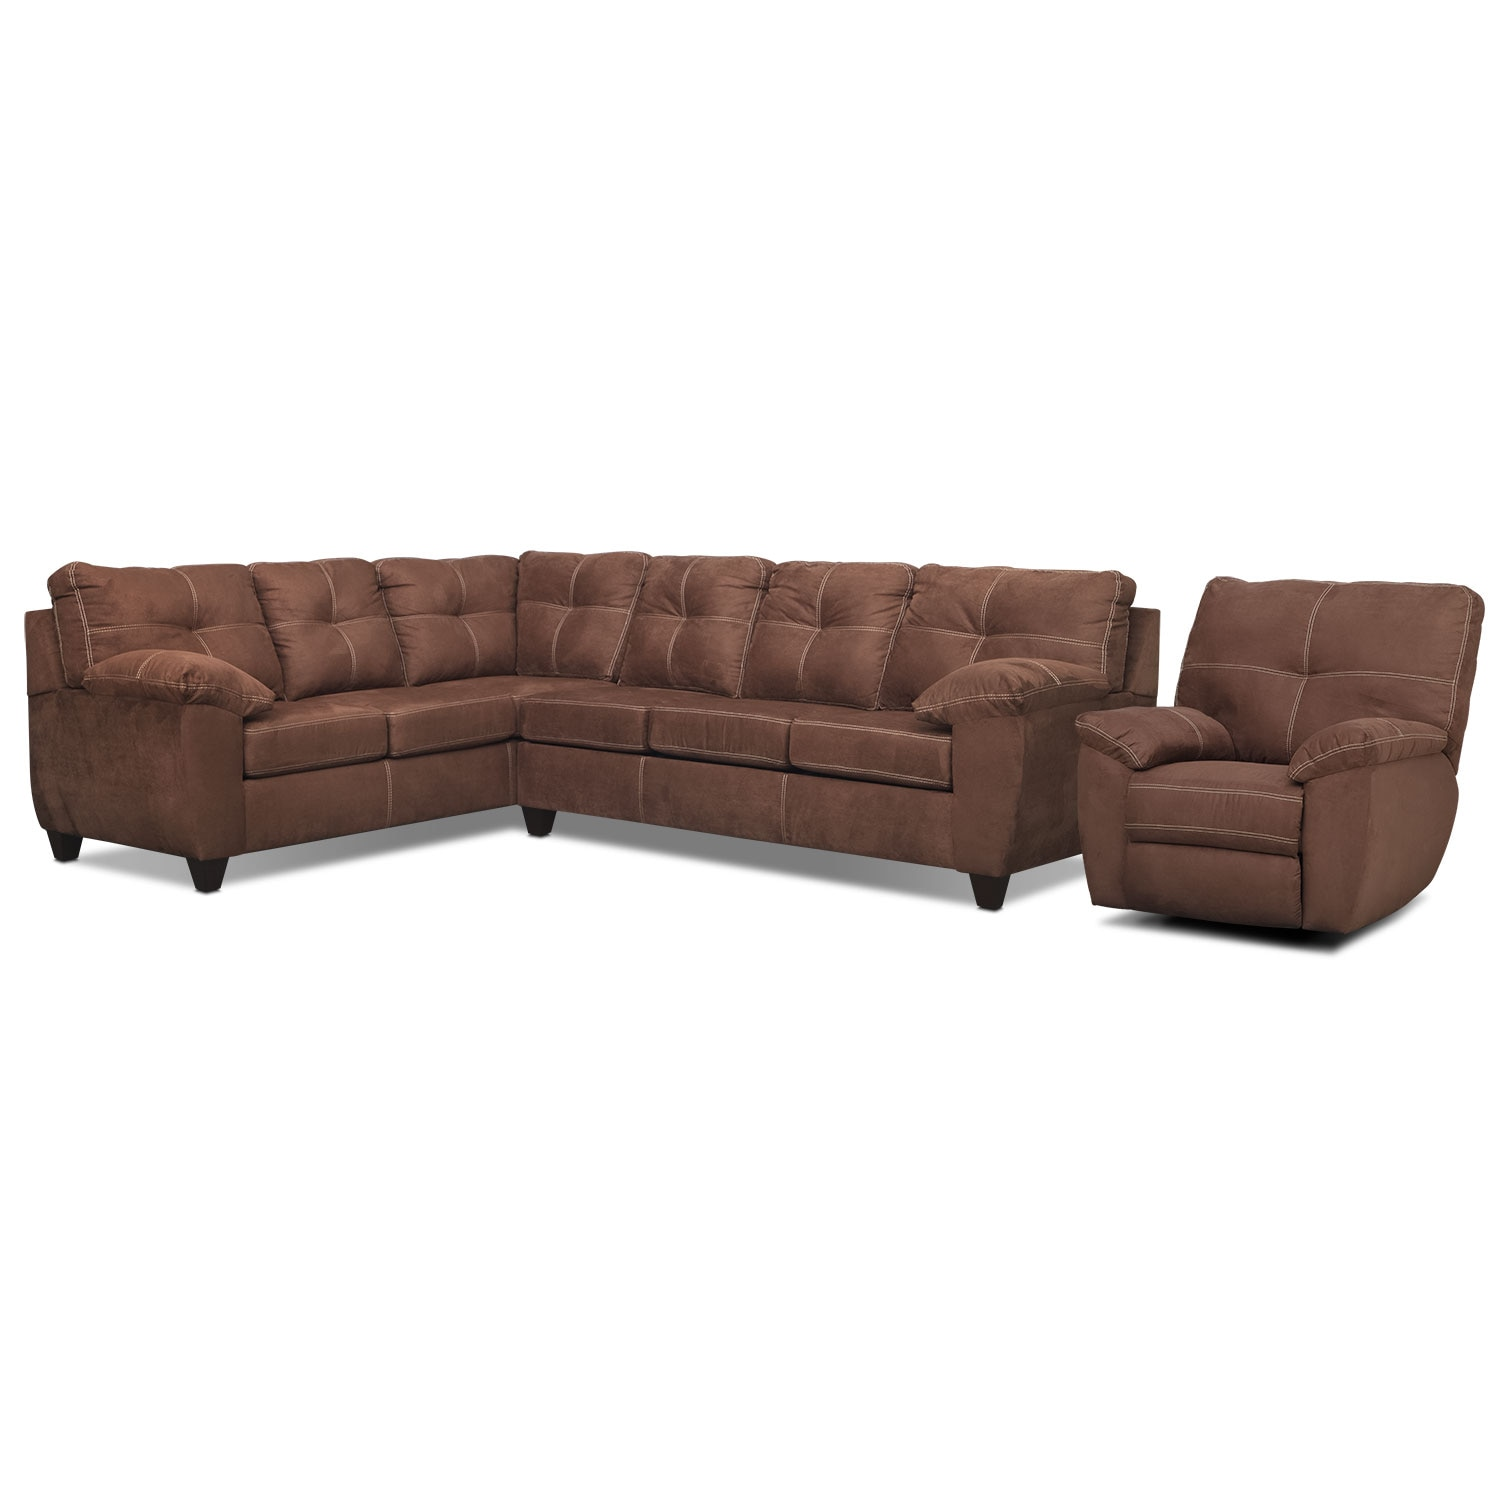 Rialto 2-Piece Sectional with Left-Facing Corner Sofa and Glider Recliner Set - Coffee